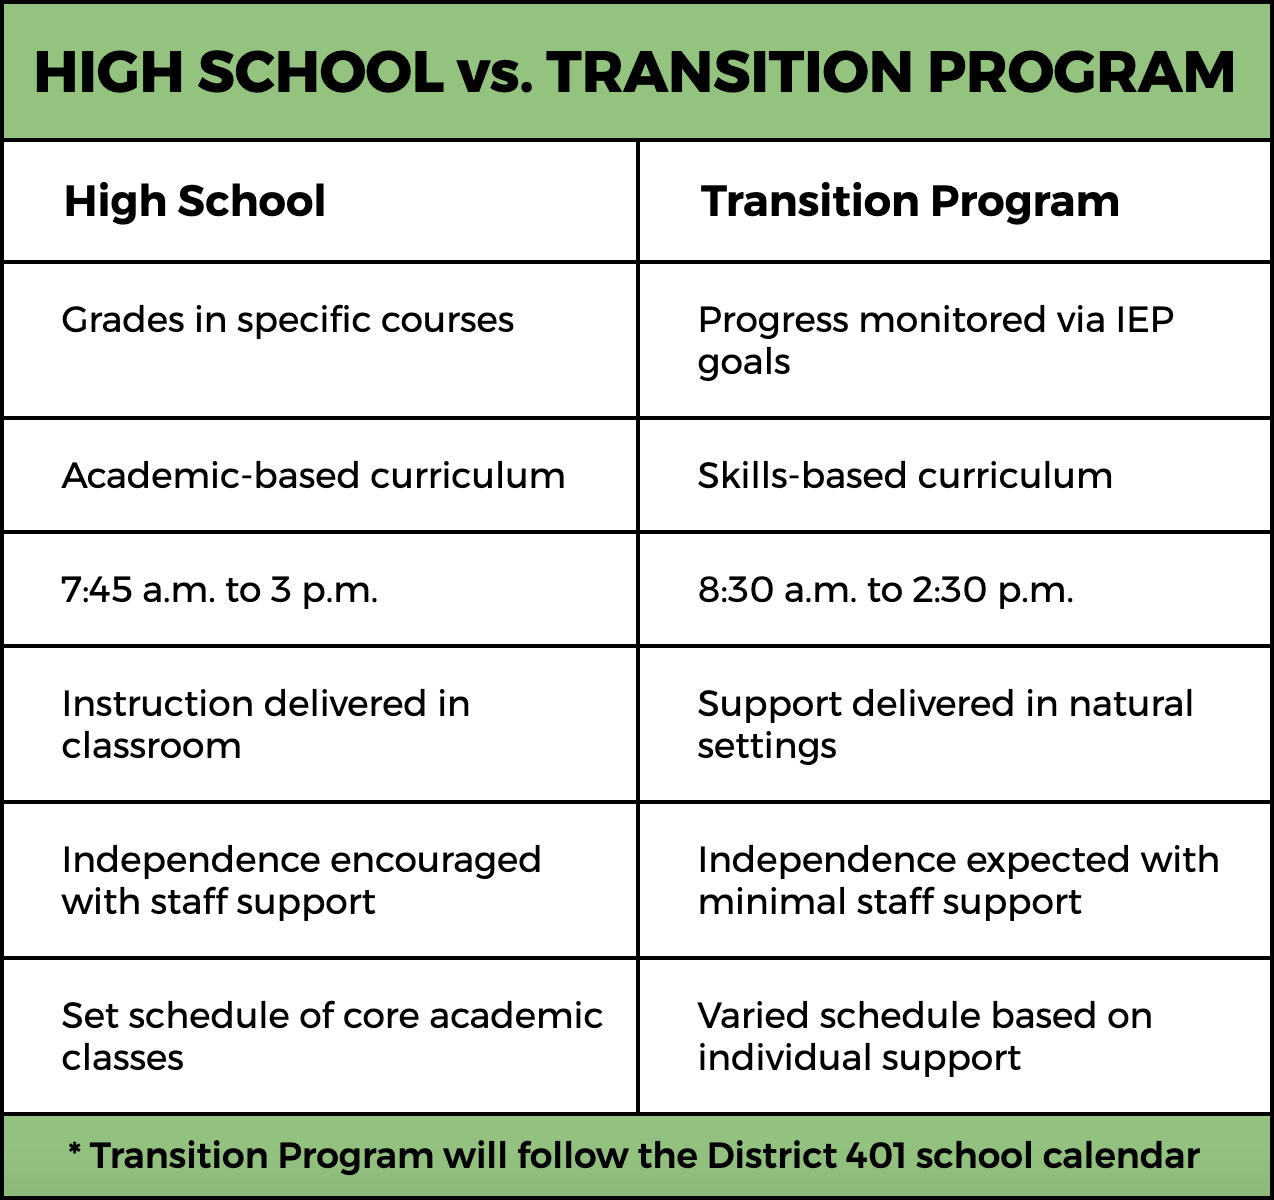 Differences between high school and the new transition program